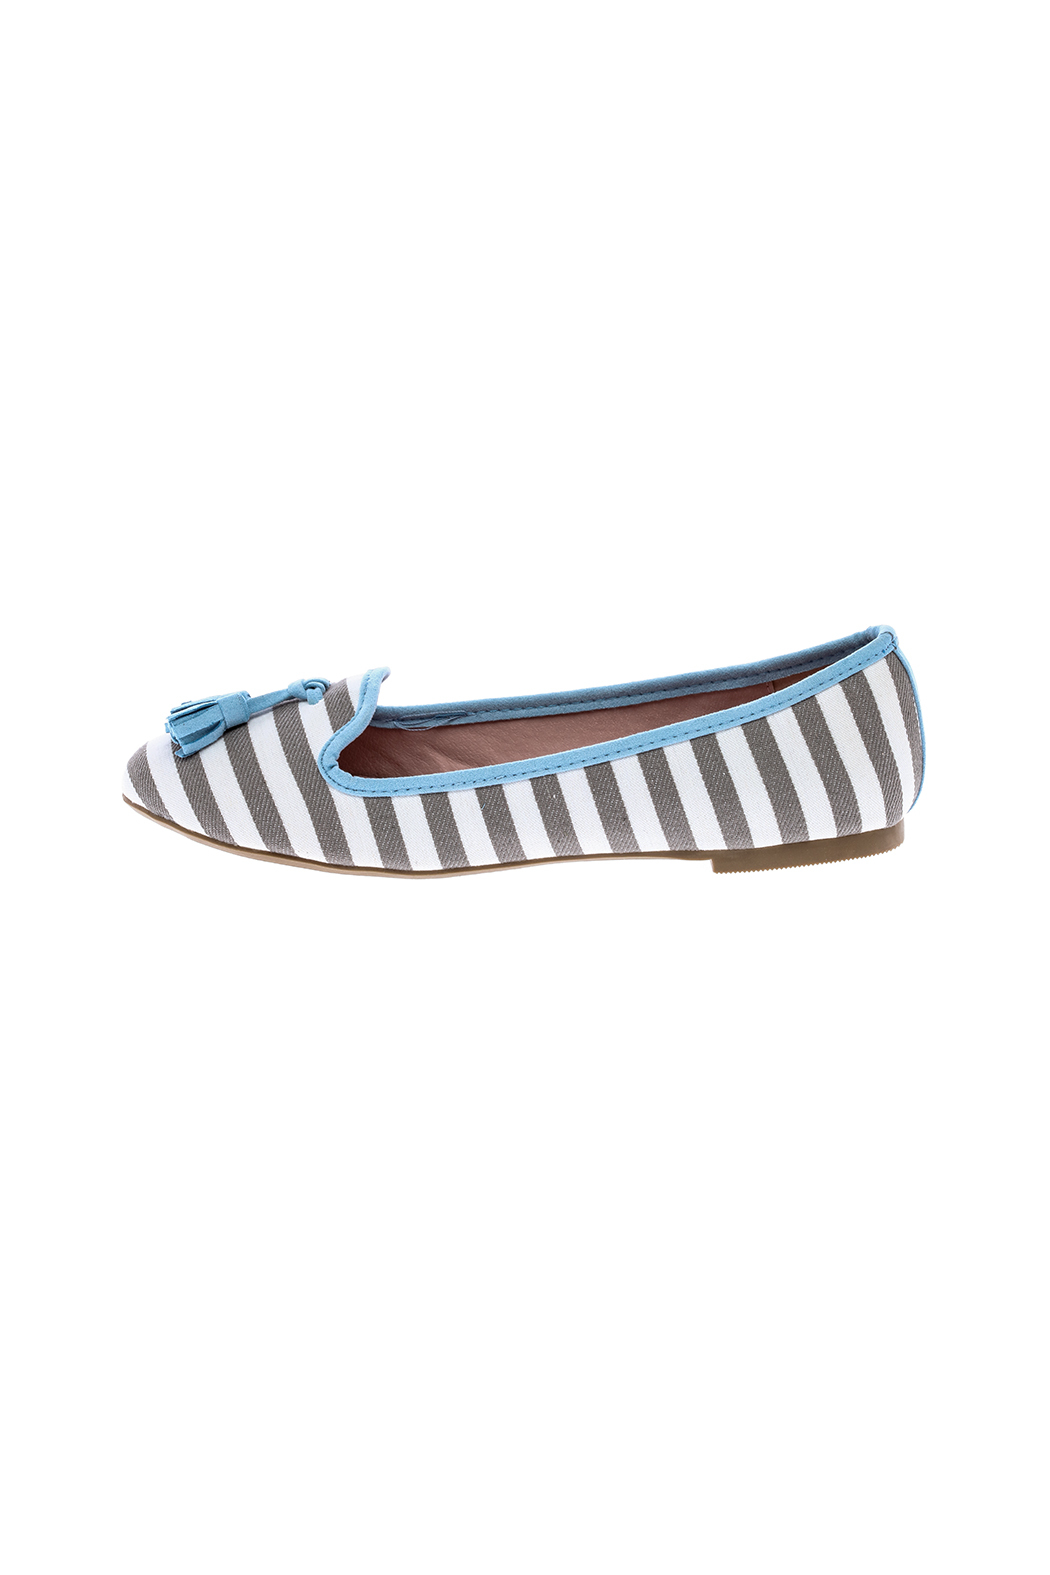 gc shoes Dorothy Striped Flat - Main Image